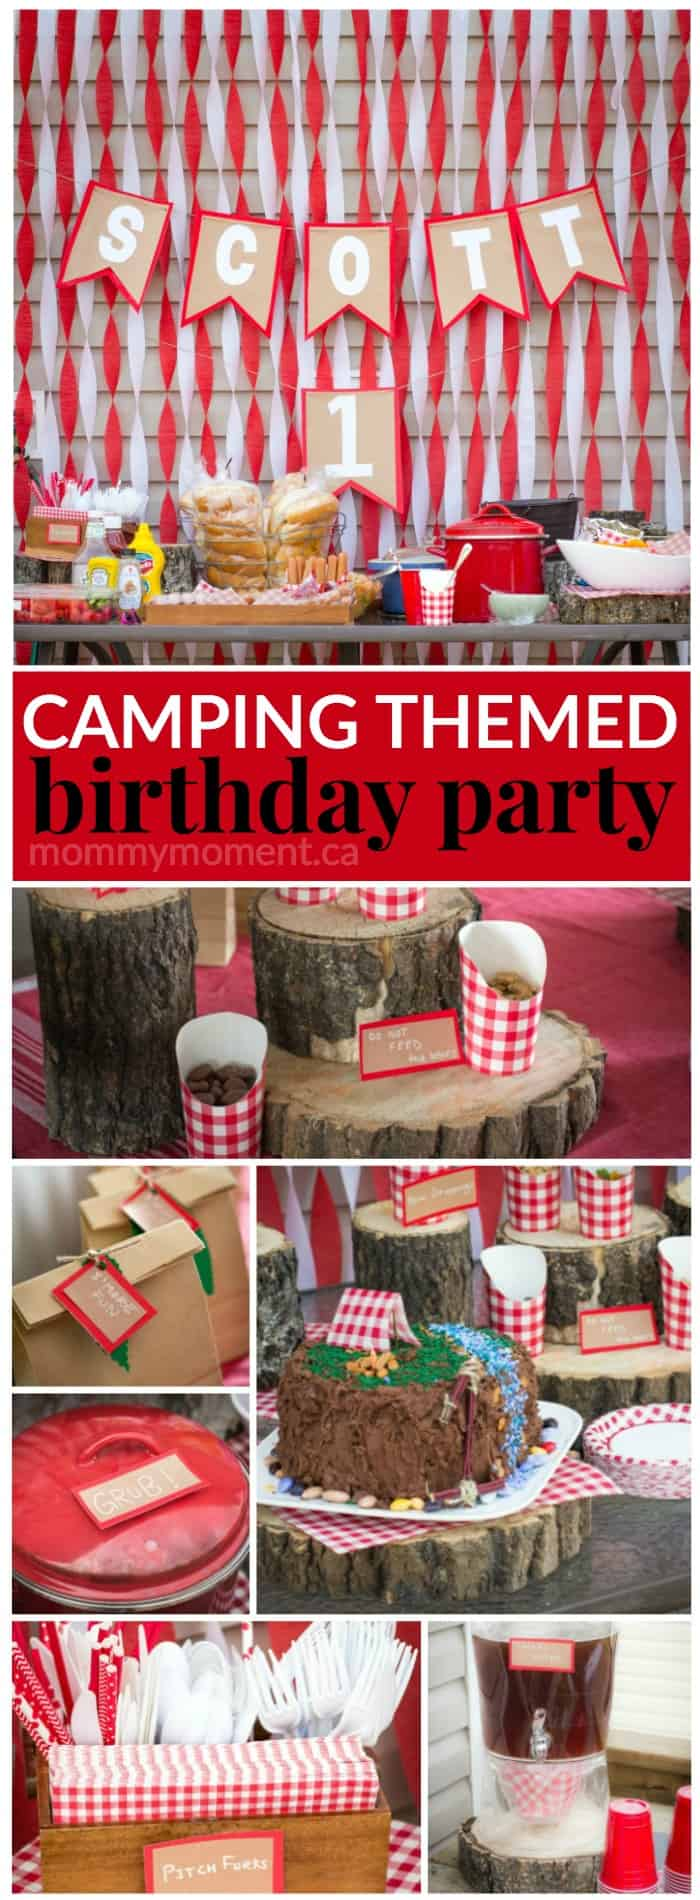 Camping themed birthday party so cute for a first  birthday party idea.